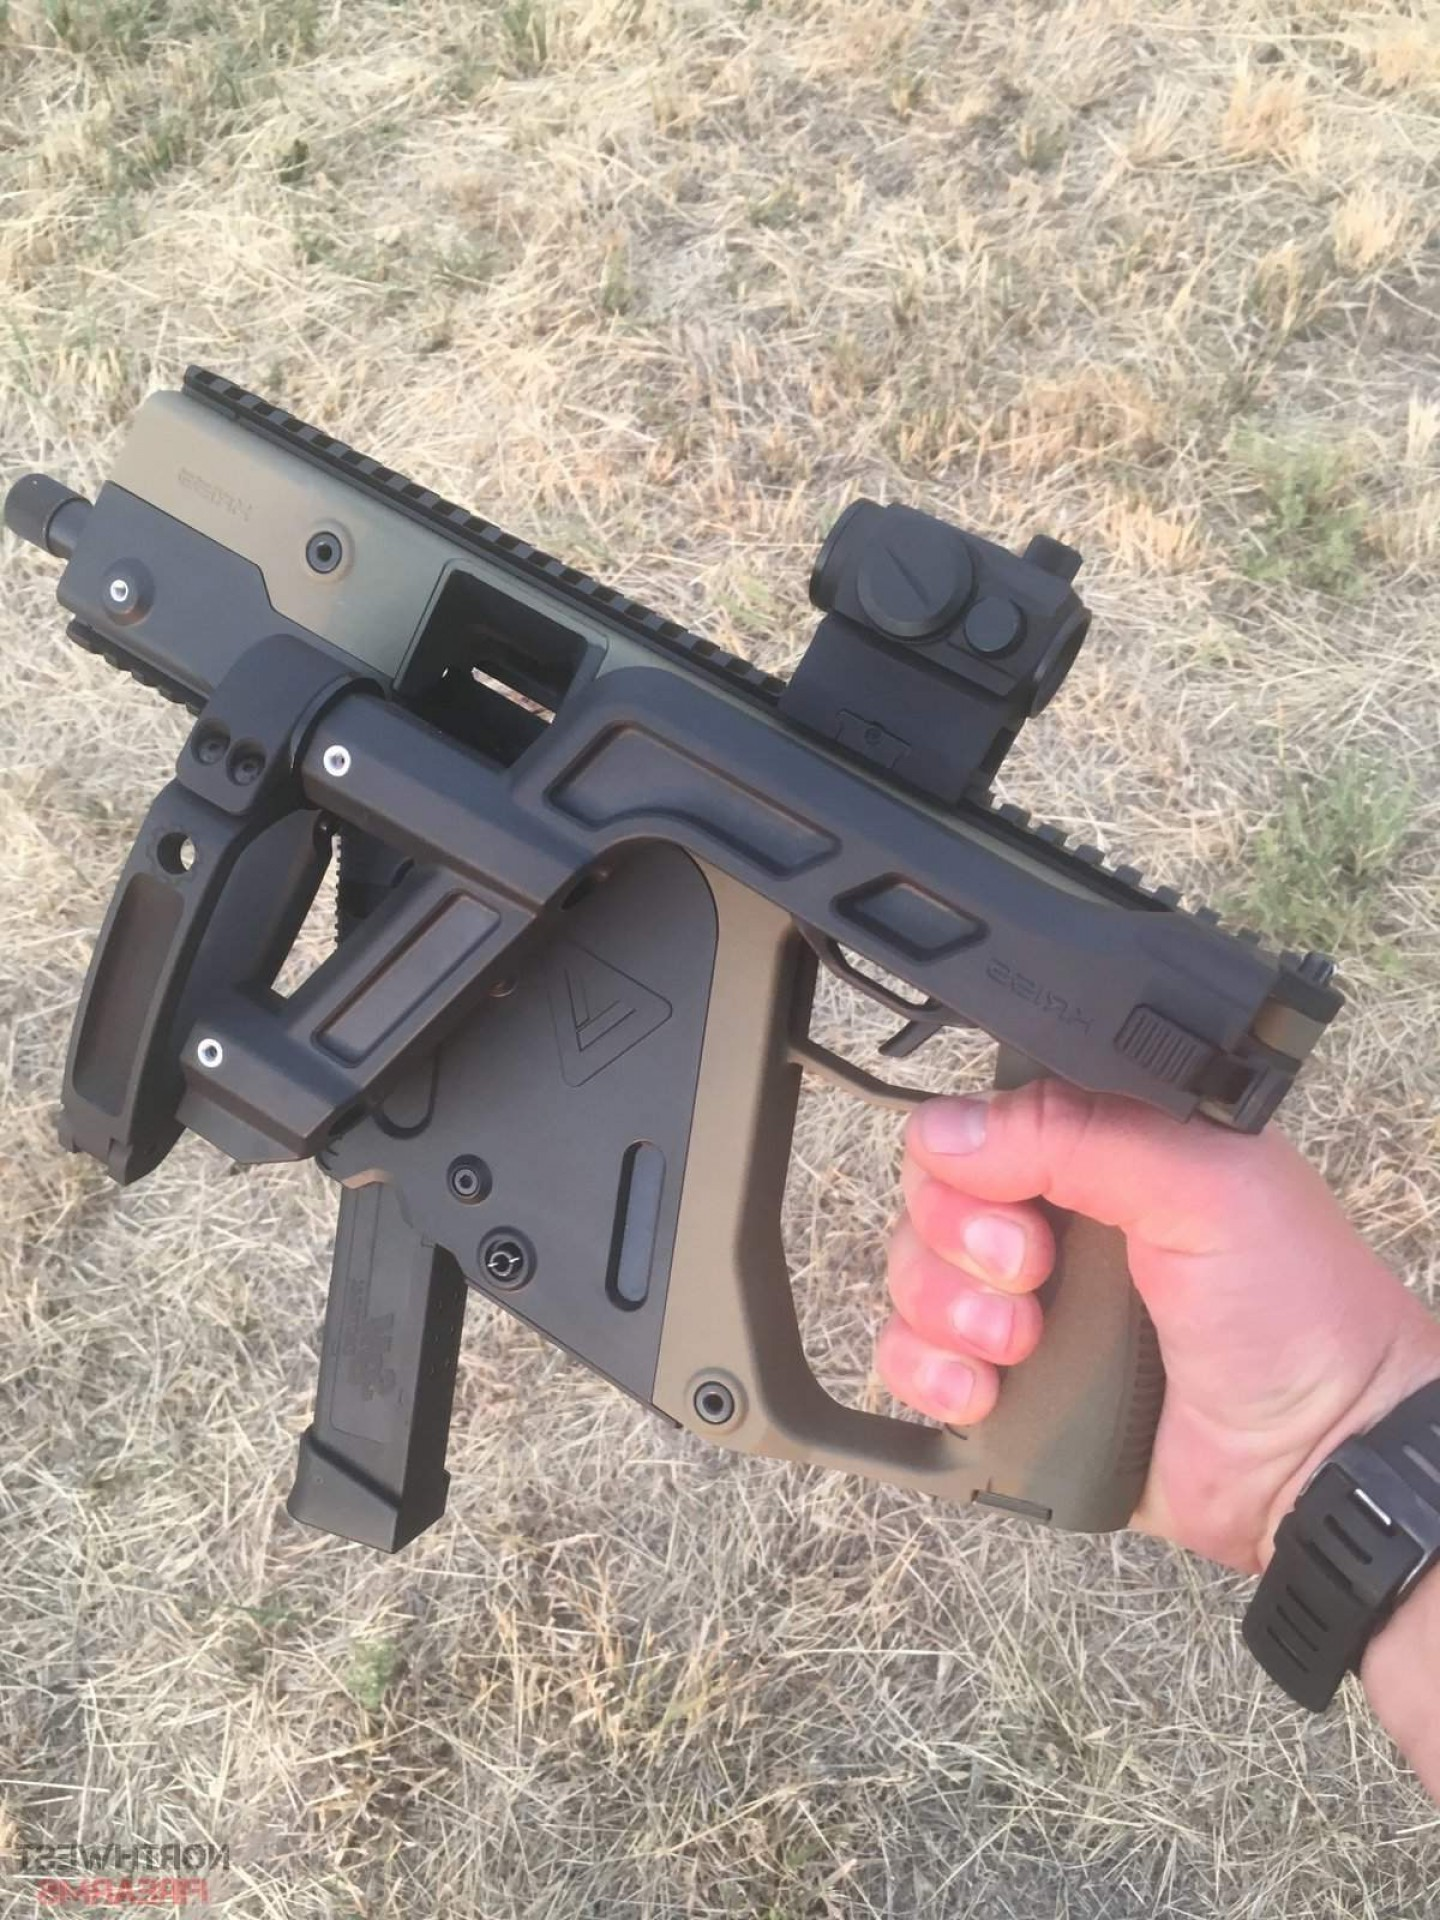 Vector Kriss Scope: Kriss Vector Sdp Gen Folder